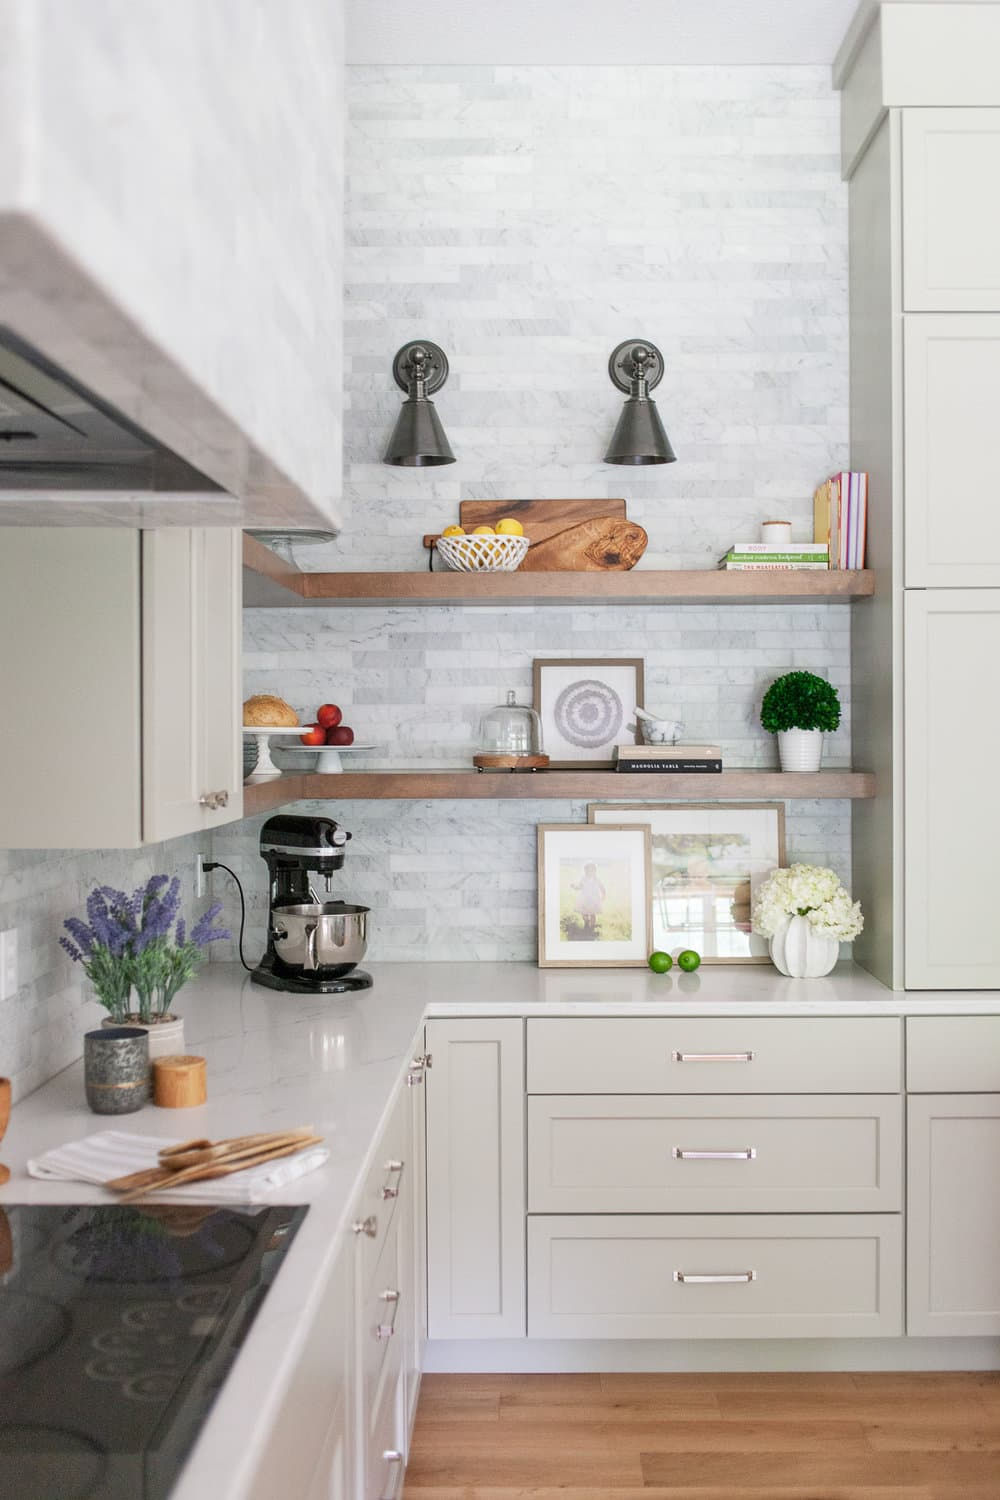 this is a spring inspired kitchen with light green cabinets and wooden shelves